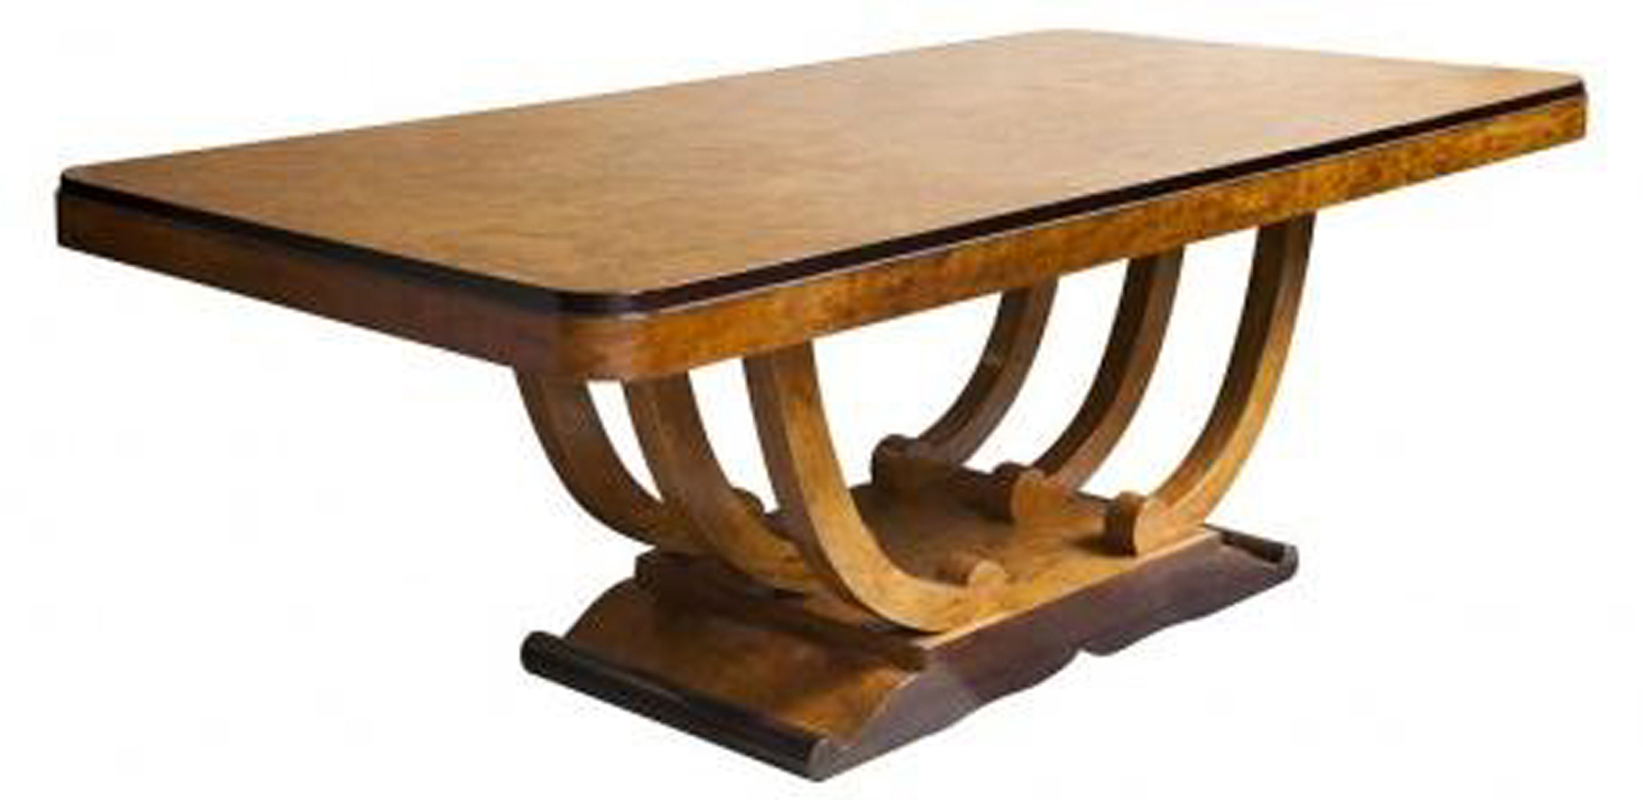 French Art Deco Burlwood U Base Dining Table For Ten | Modernism